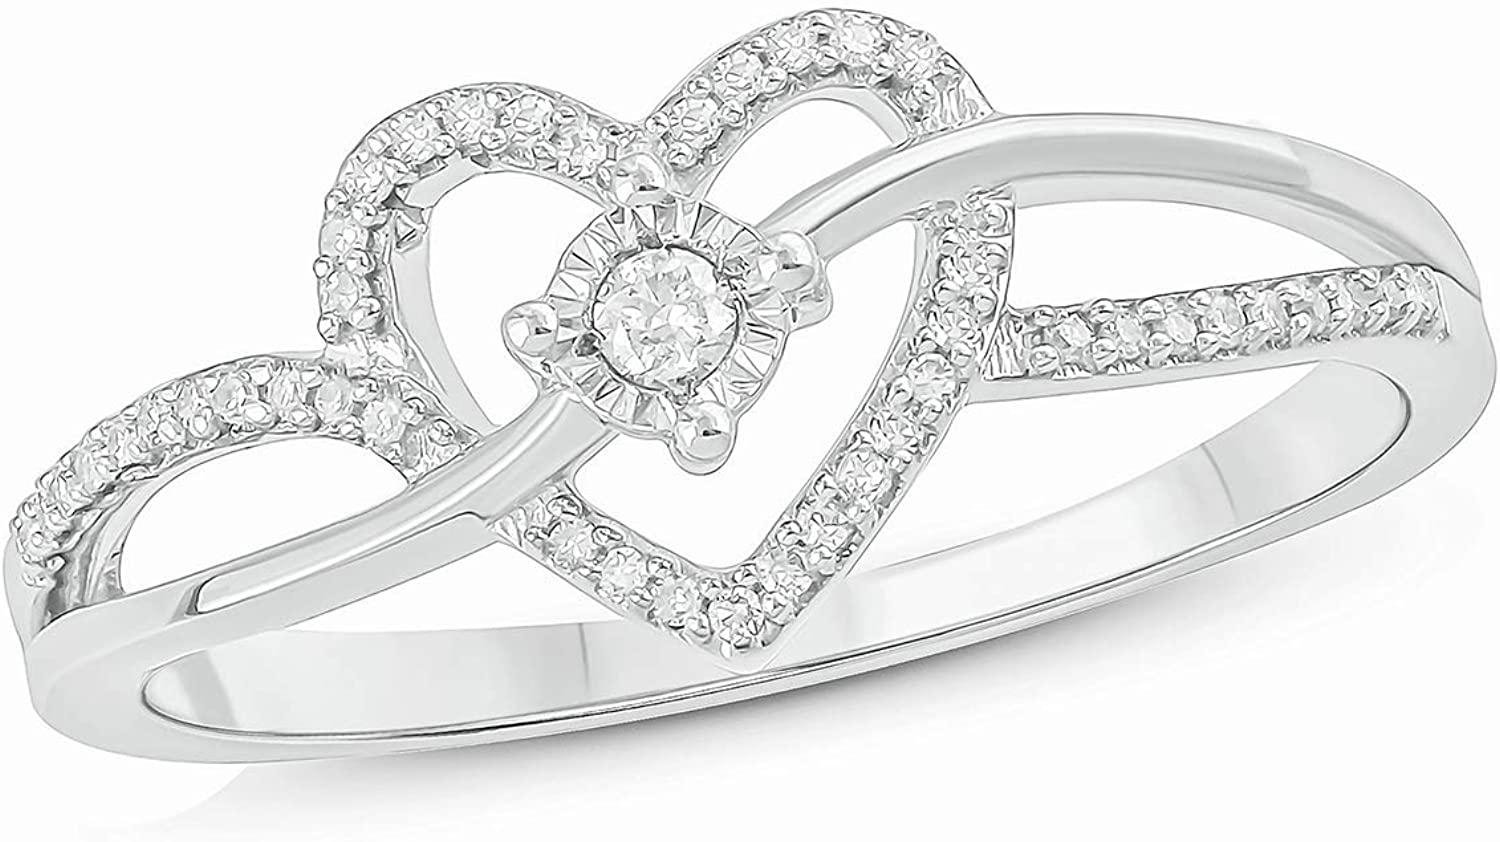 Cali Trove 925 Sterling Silver Accent Round White Natural Diamond Heart With Miracle Plate Promise Ring for Women